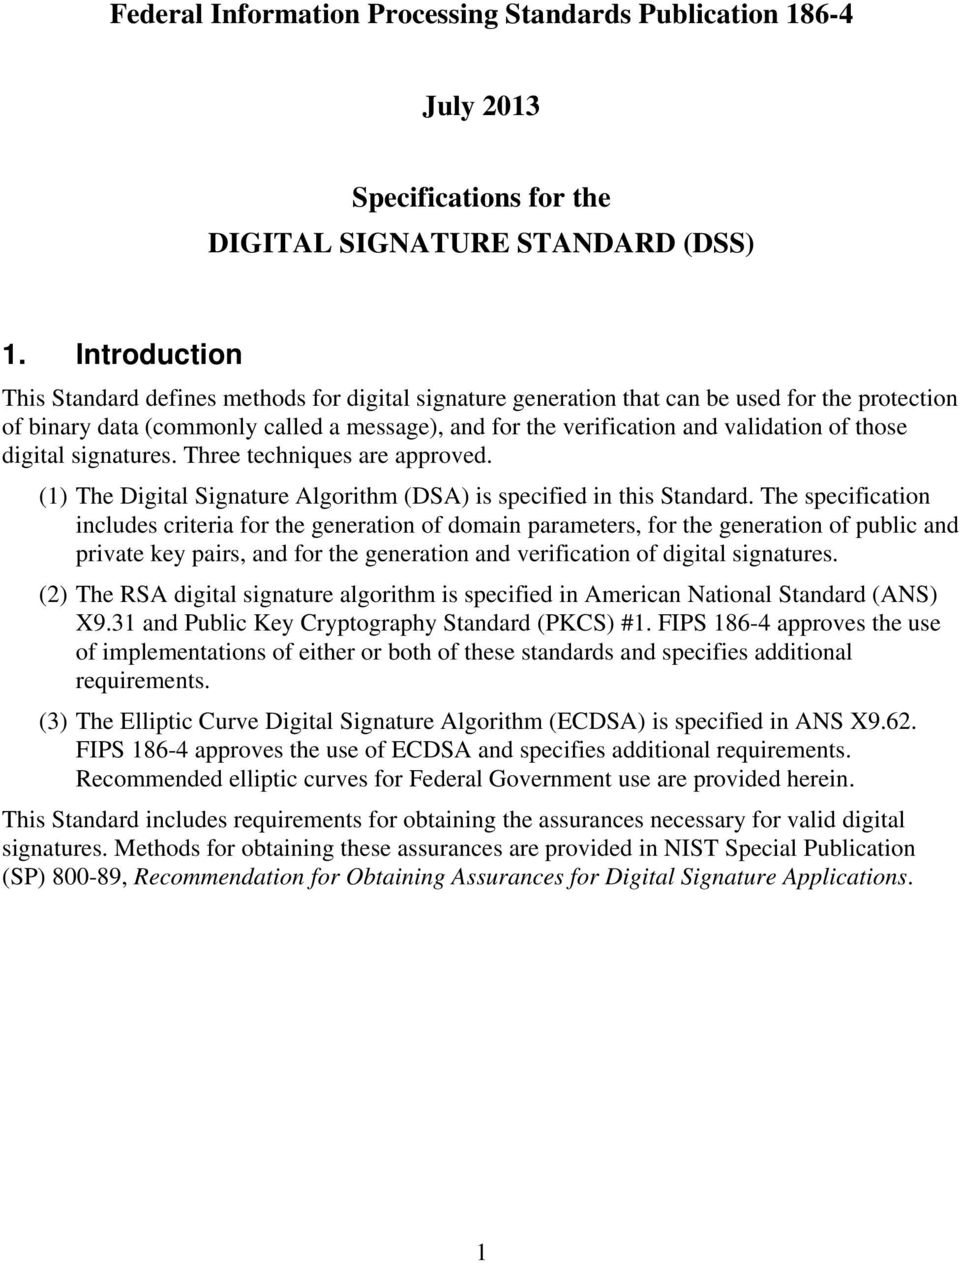 those digital signatures. Three techniques are approved. (1) The Digital Signature Algorithm (DSA) is specified in this Standard.